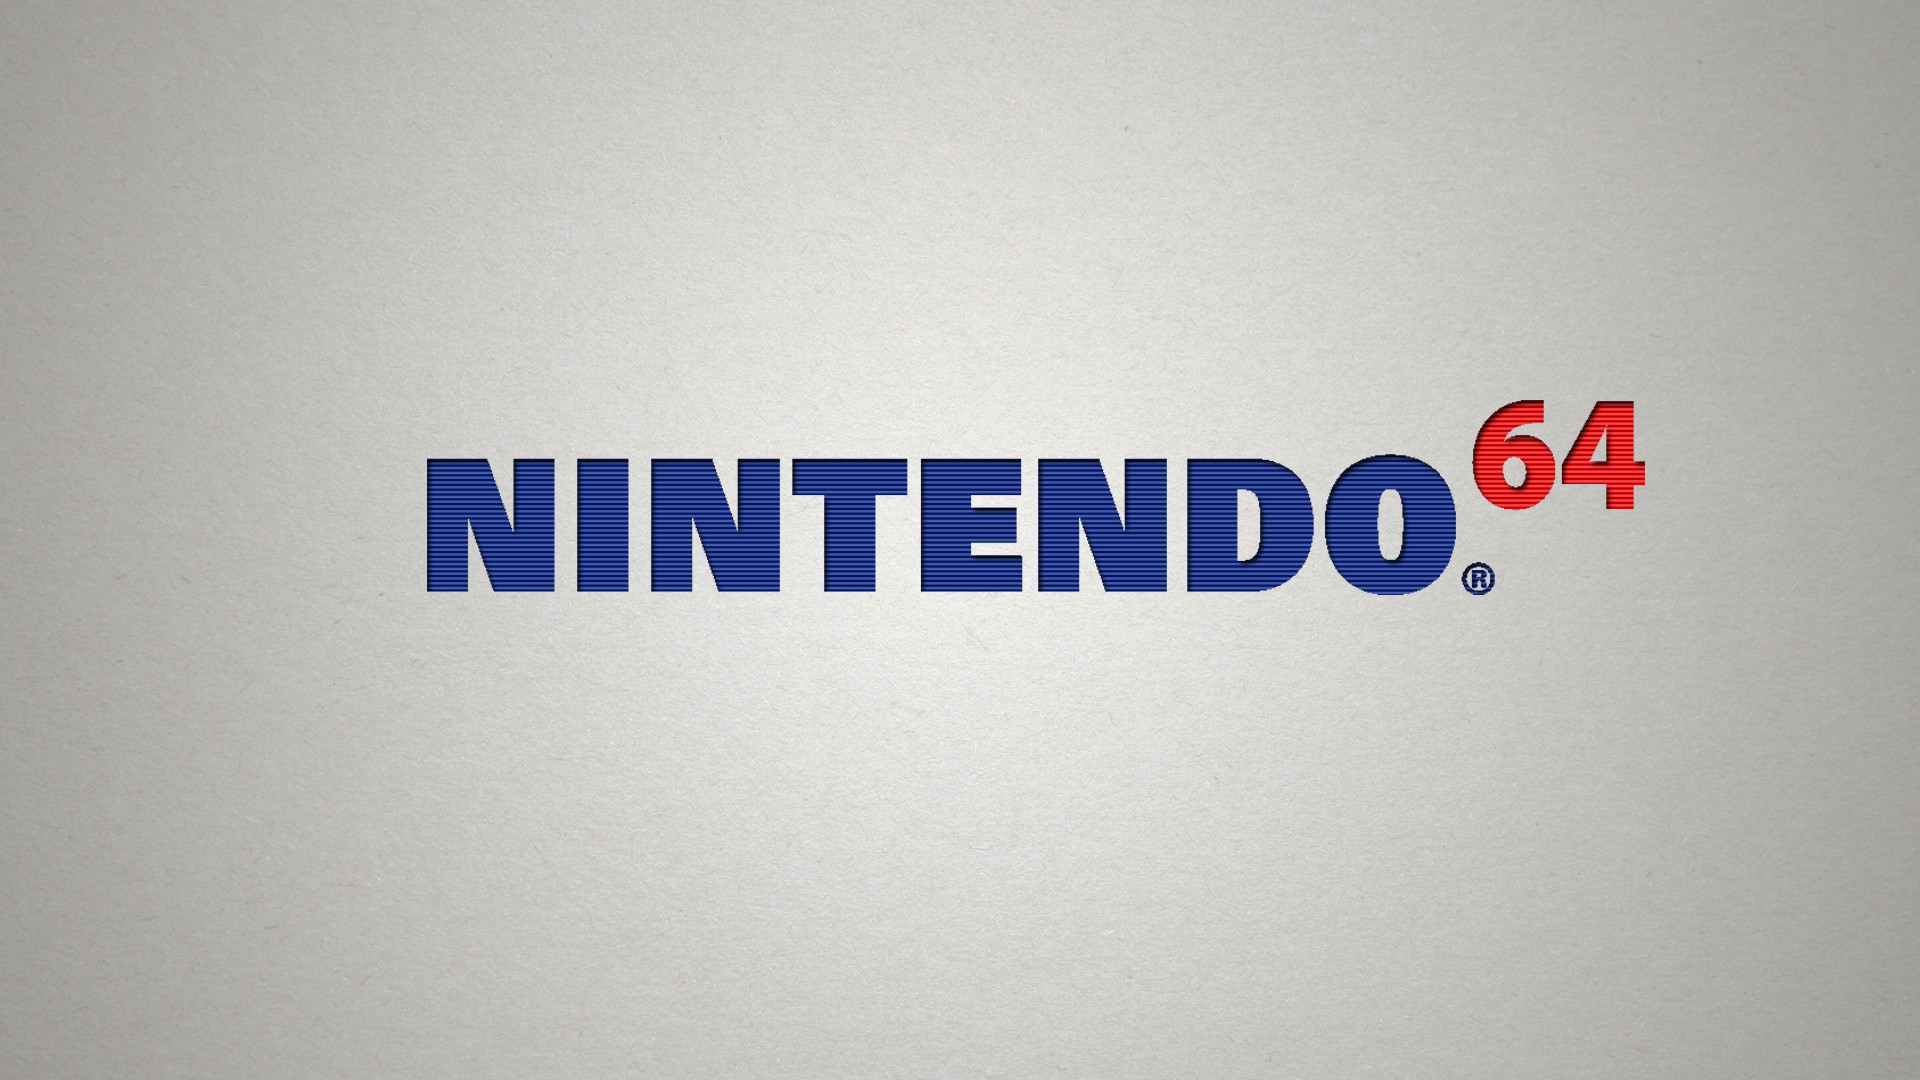 1920x1080 Nintendo 64 HD Wallpapers | Backgrounds - Wallpaper Abyss